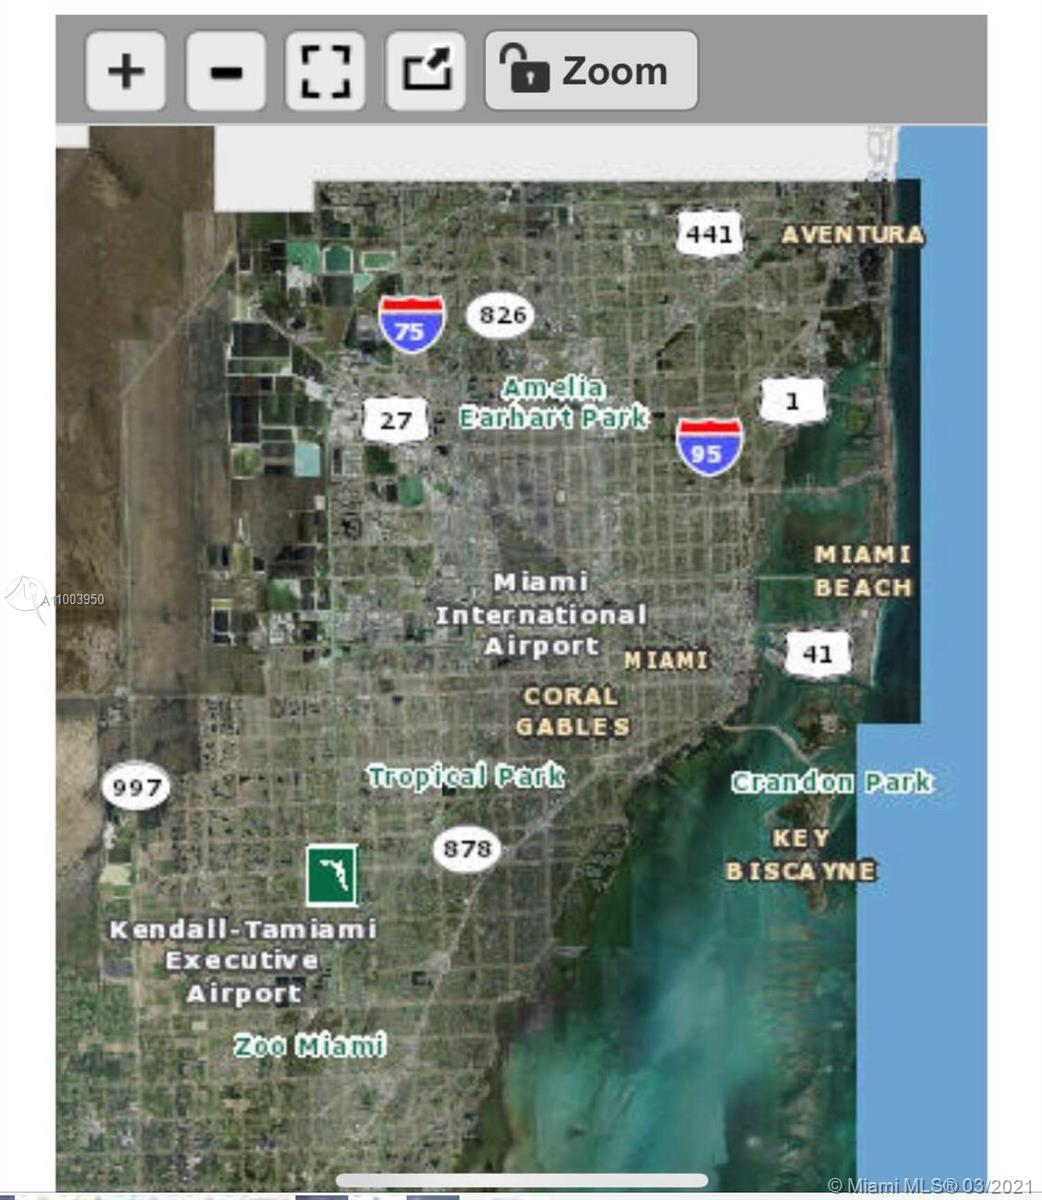 Details for 3465 Meridian Ave, Miami Beach, FL 33140